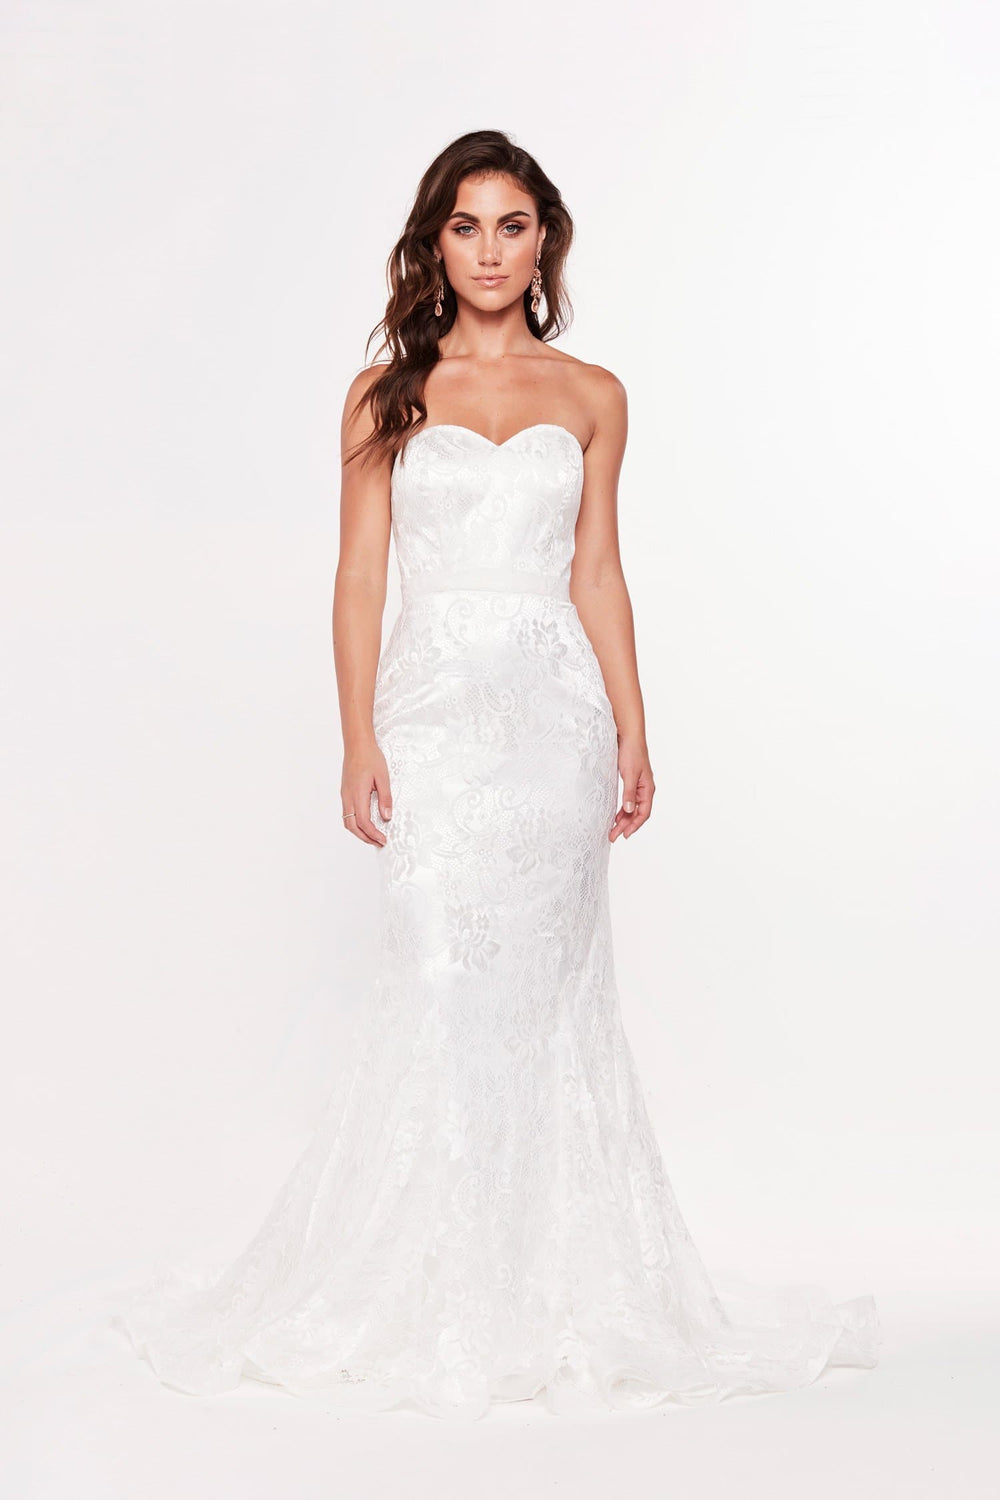 A&N Leanna - White Lace Strapless Gown with Mermaid Train